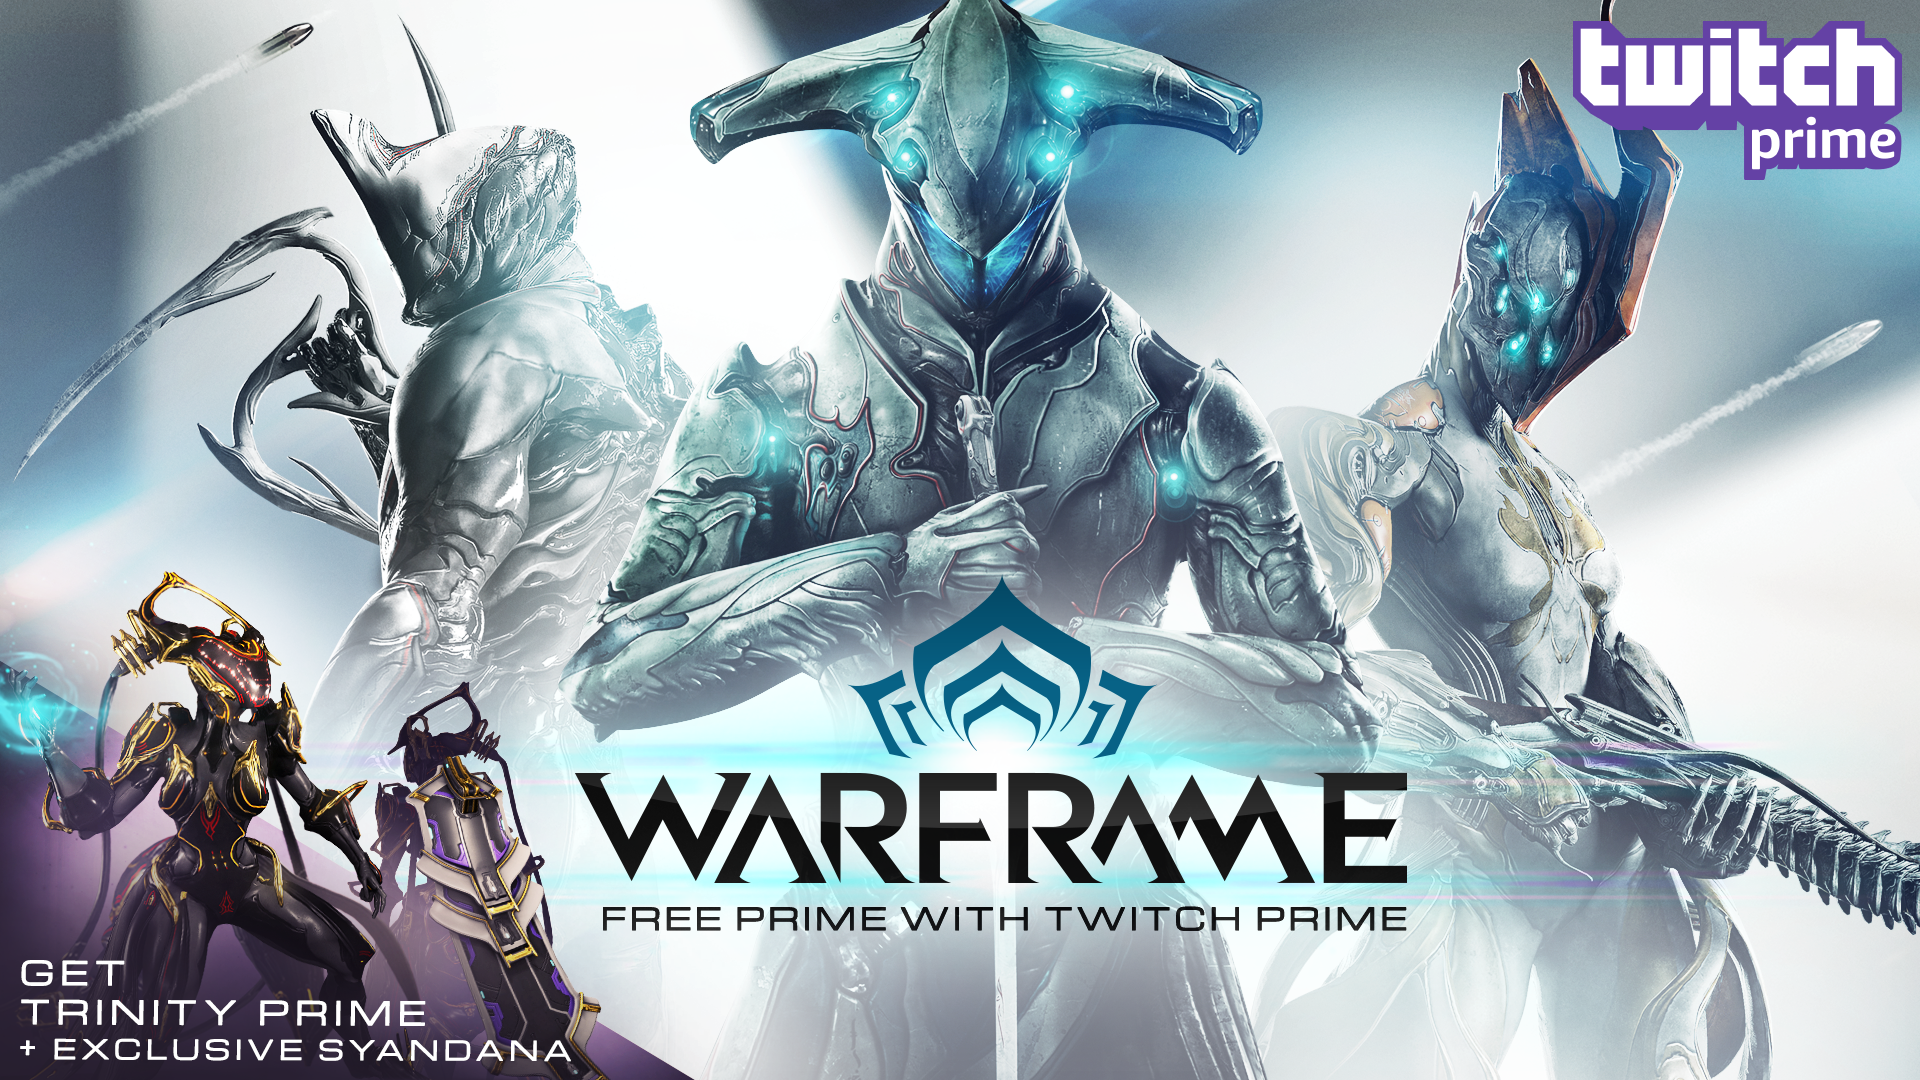 Twitch Prime Members, Get Trinity Prime and Exclusive Prime